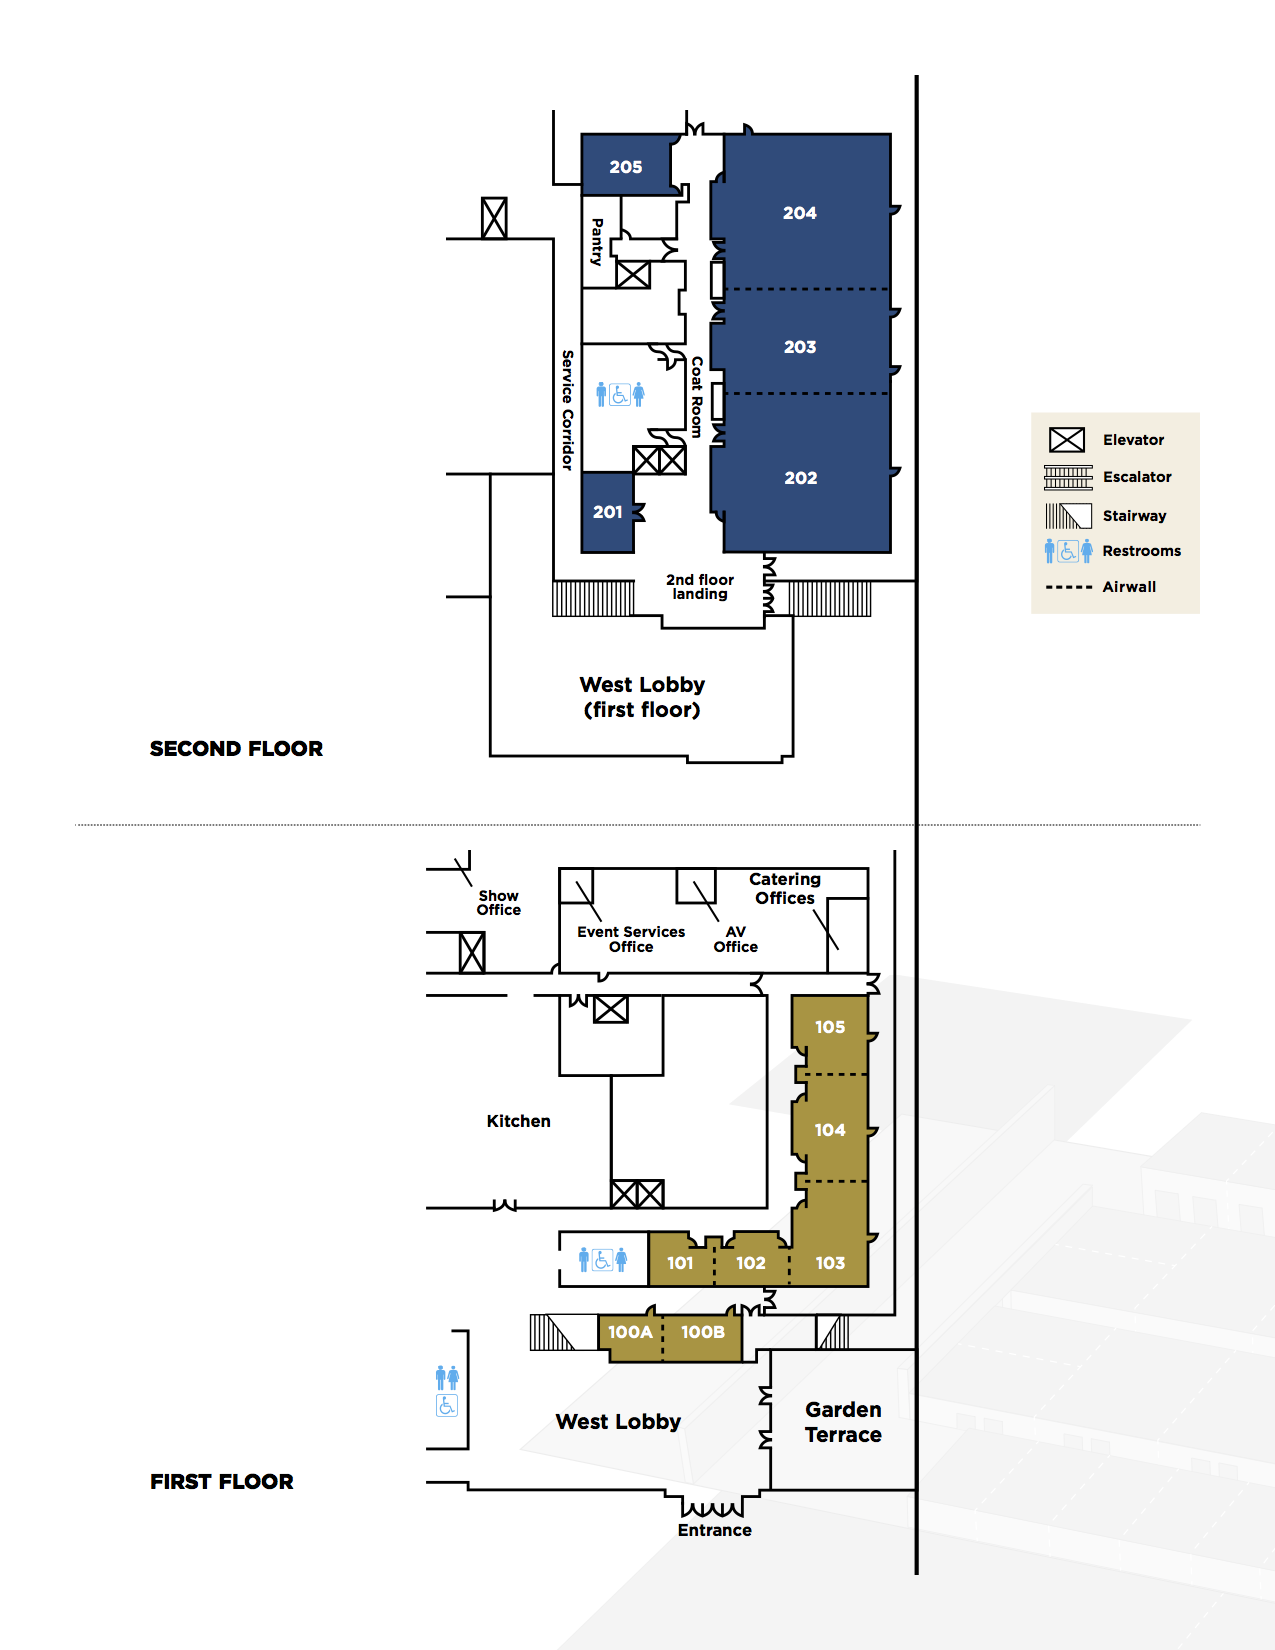 West Lobby floor plan